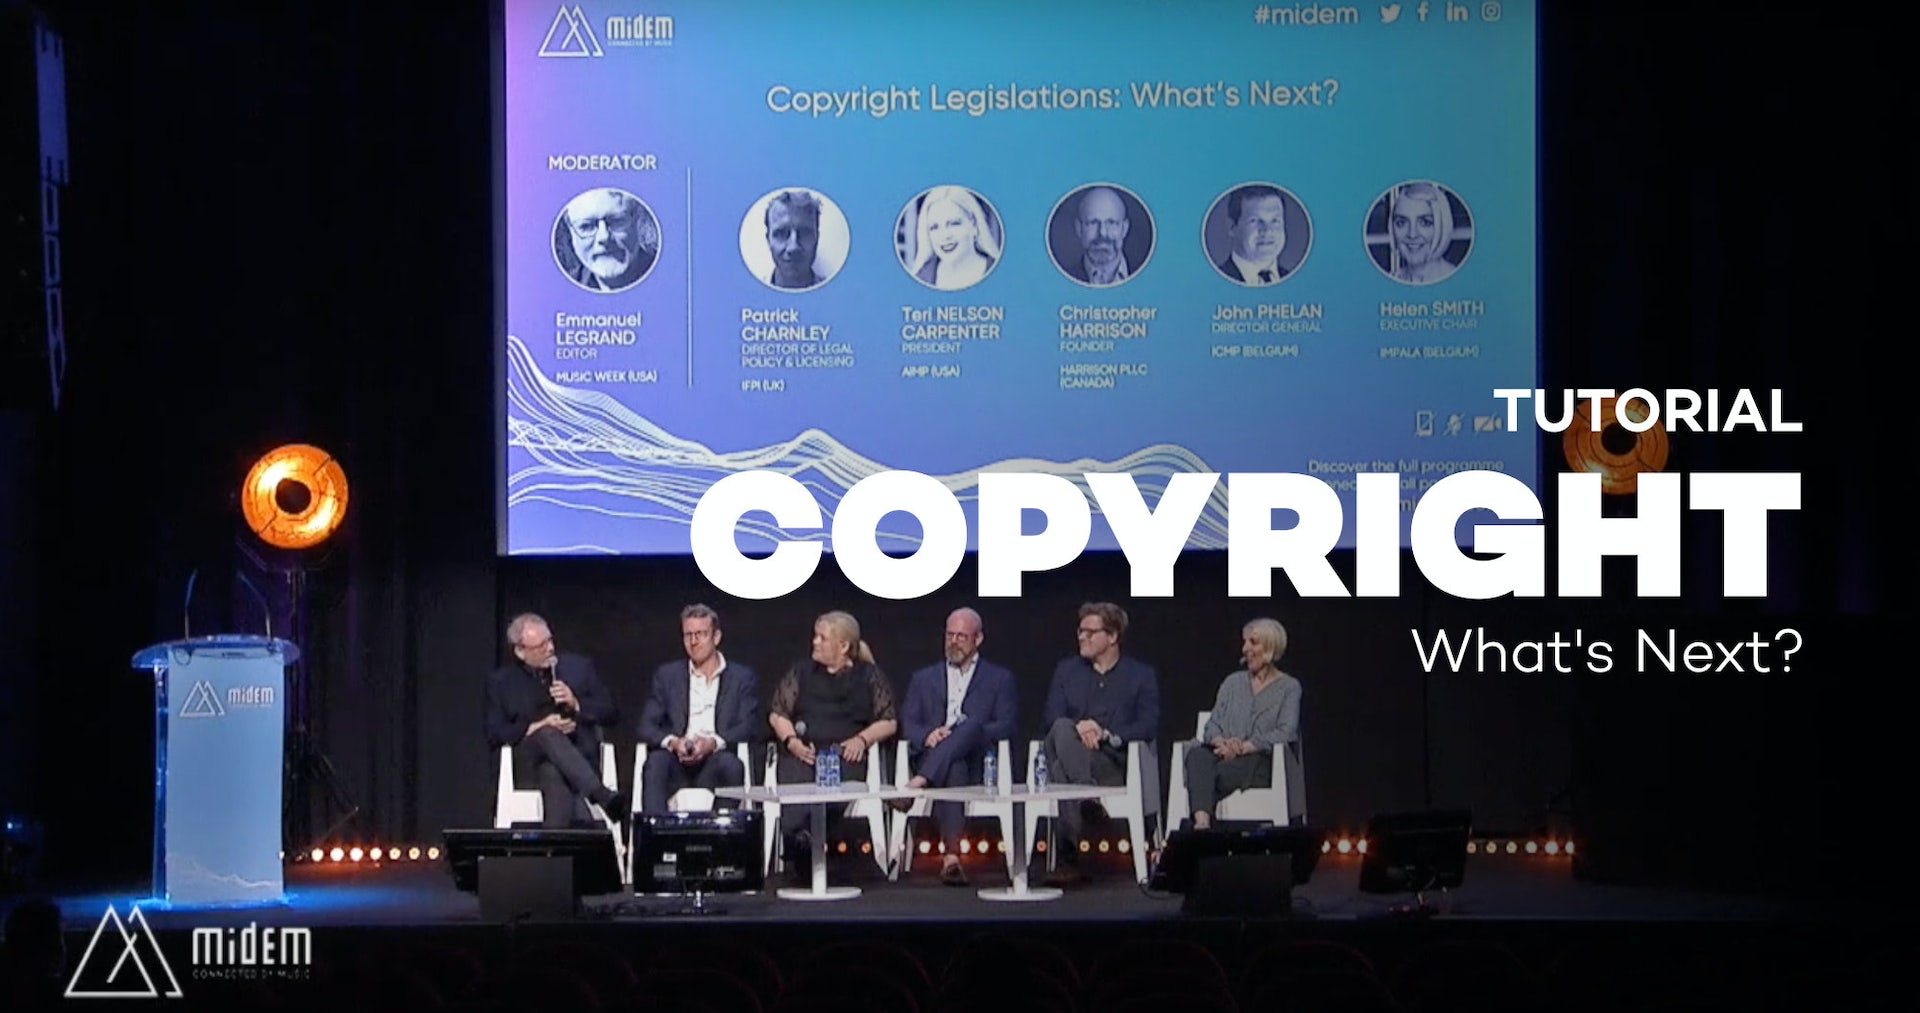 Copyright Legislations: What's Next? - Midem 2019